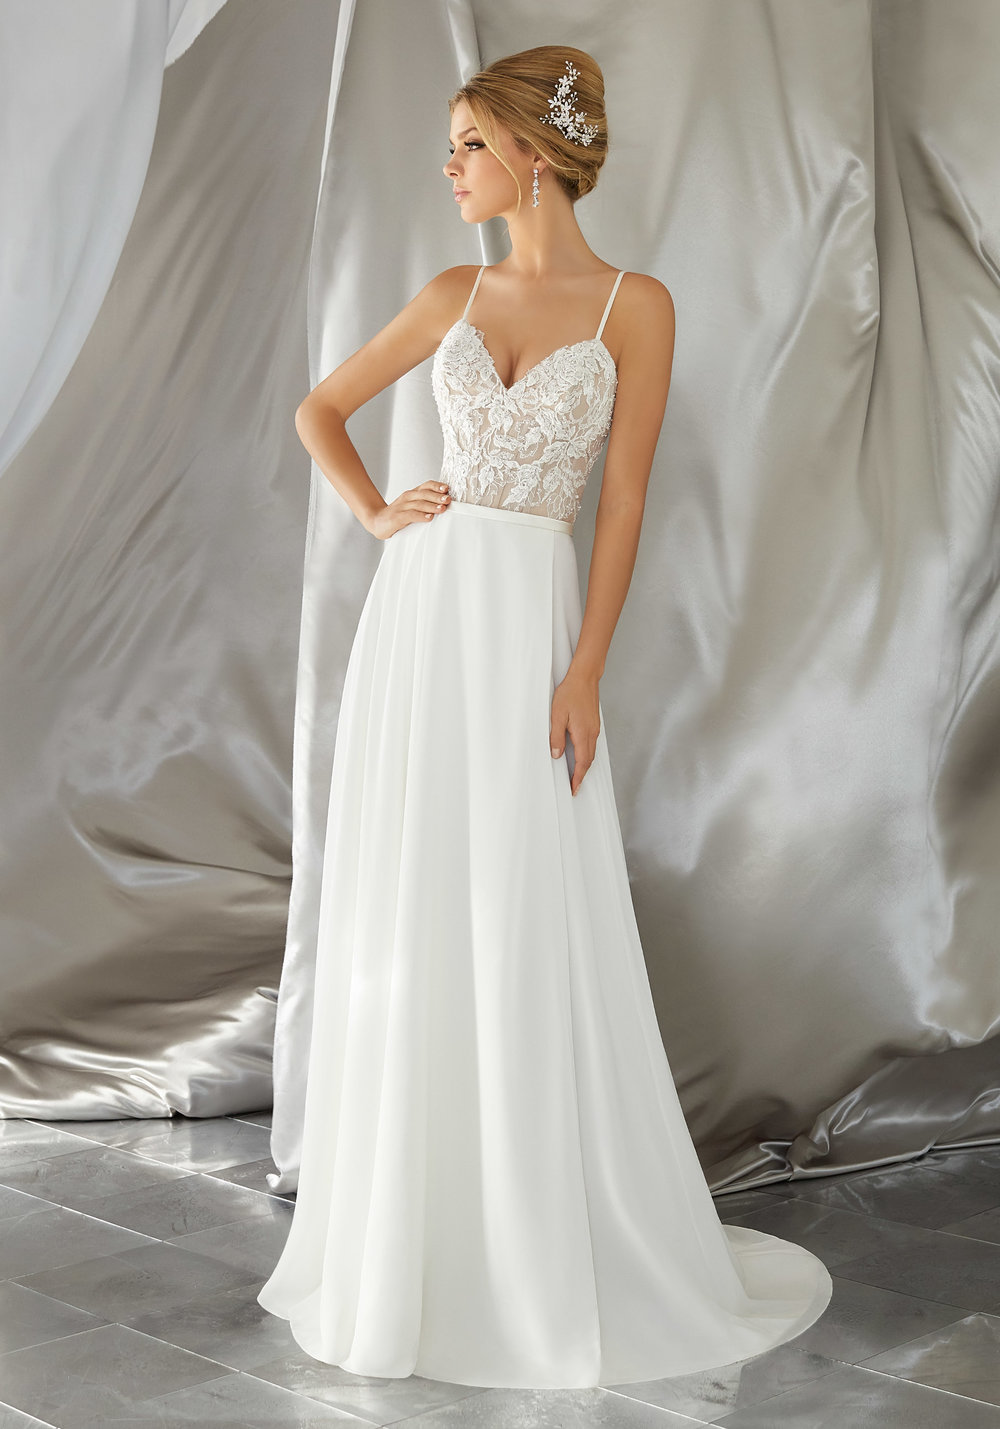 Relaxed wedding gown collections available at Bon Bon Belle.